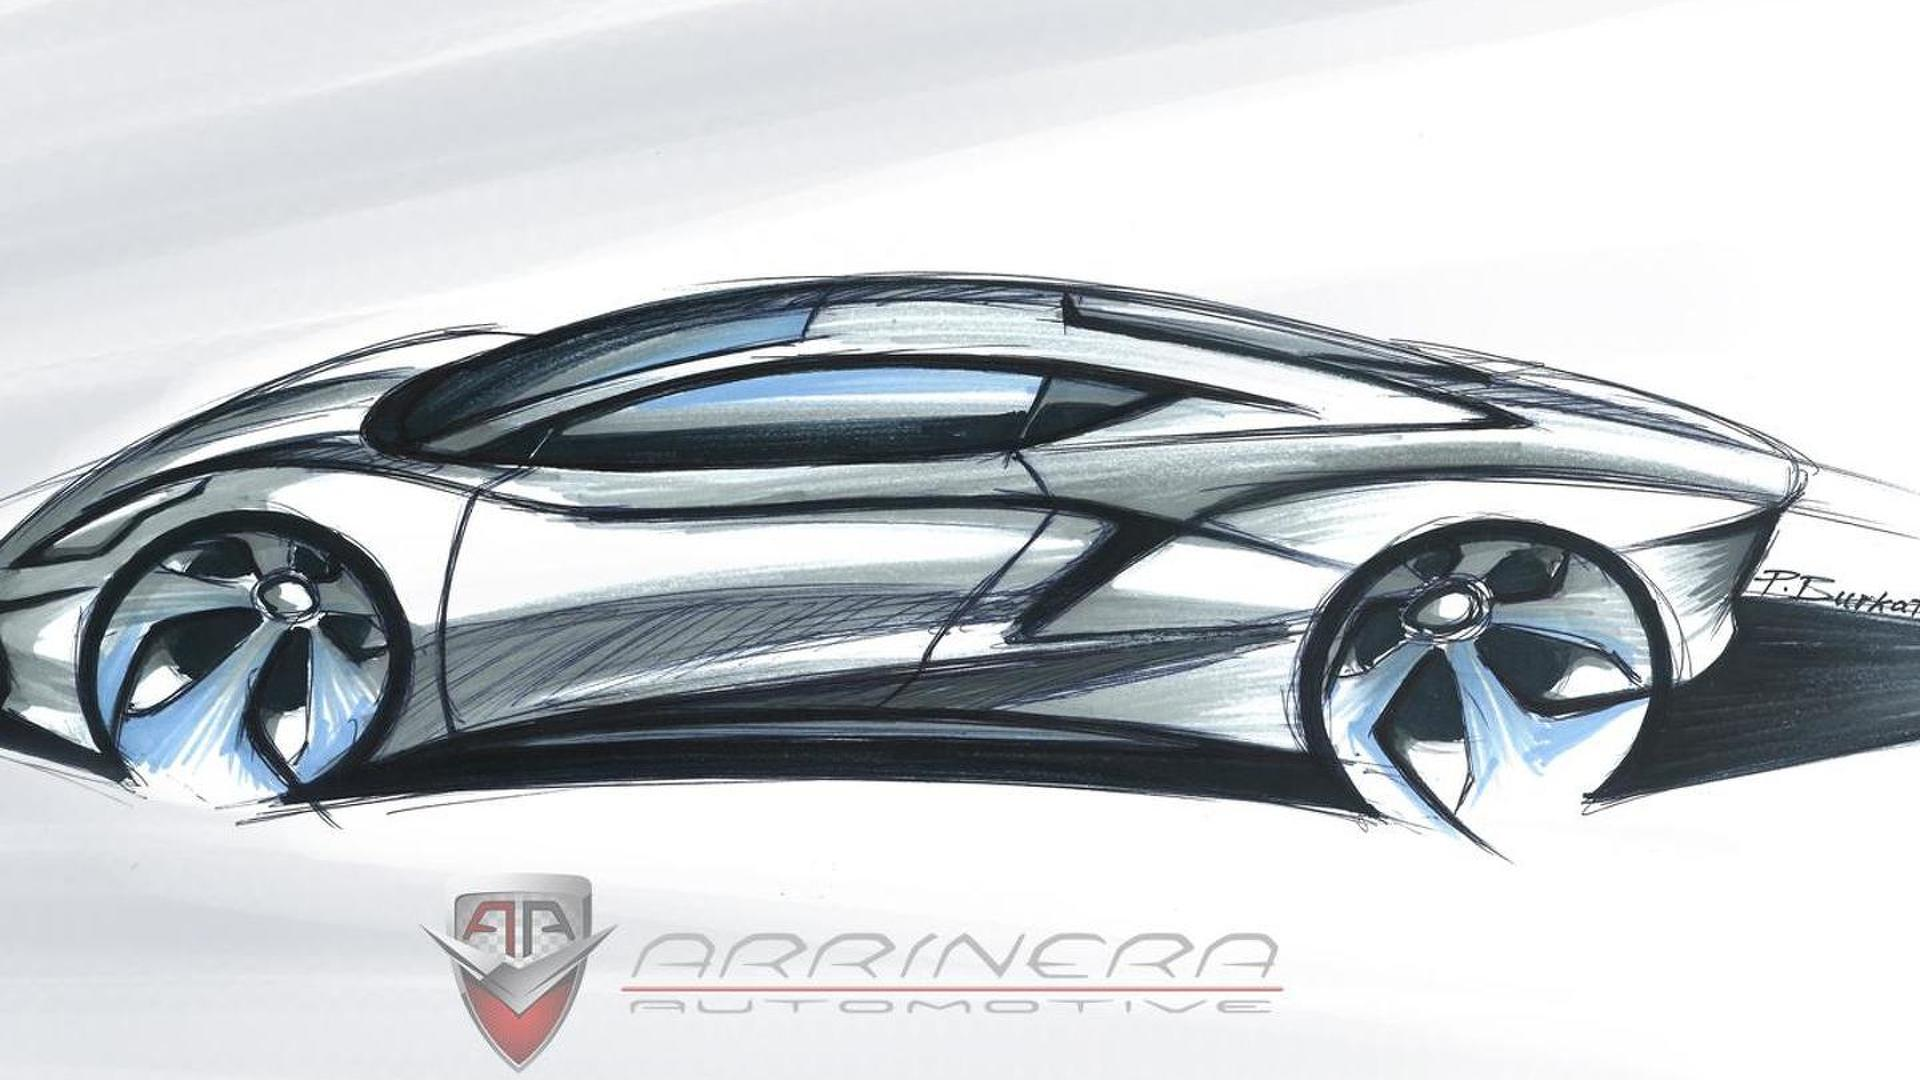 Arrinera Automotive Releases Sketches Of Their Production Supercar